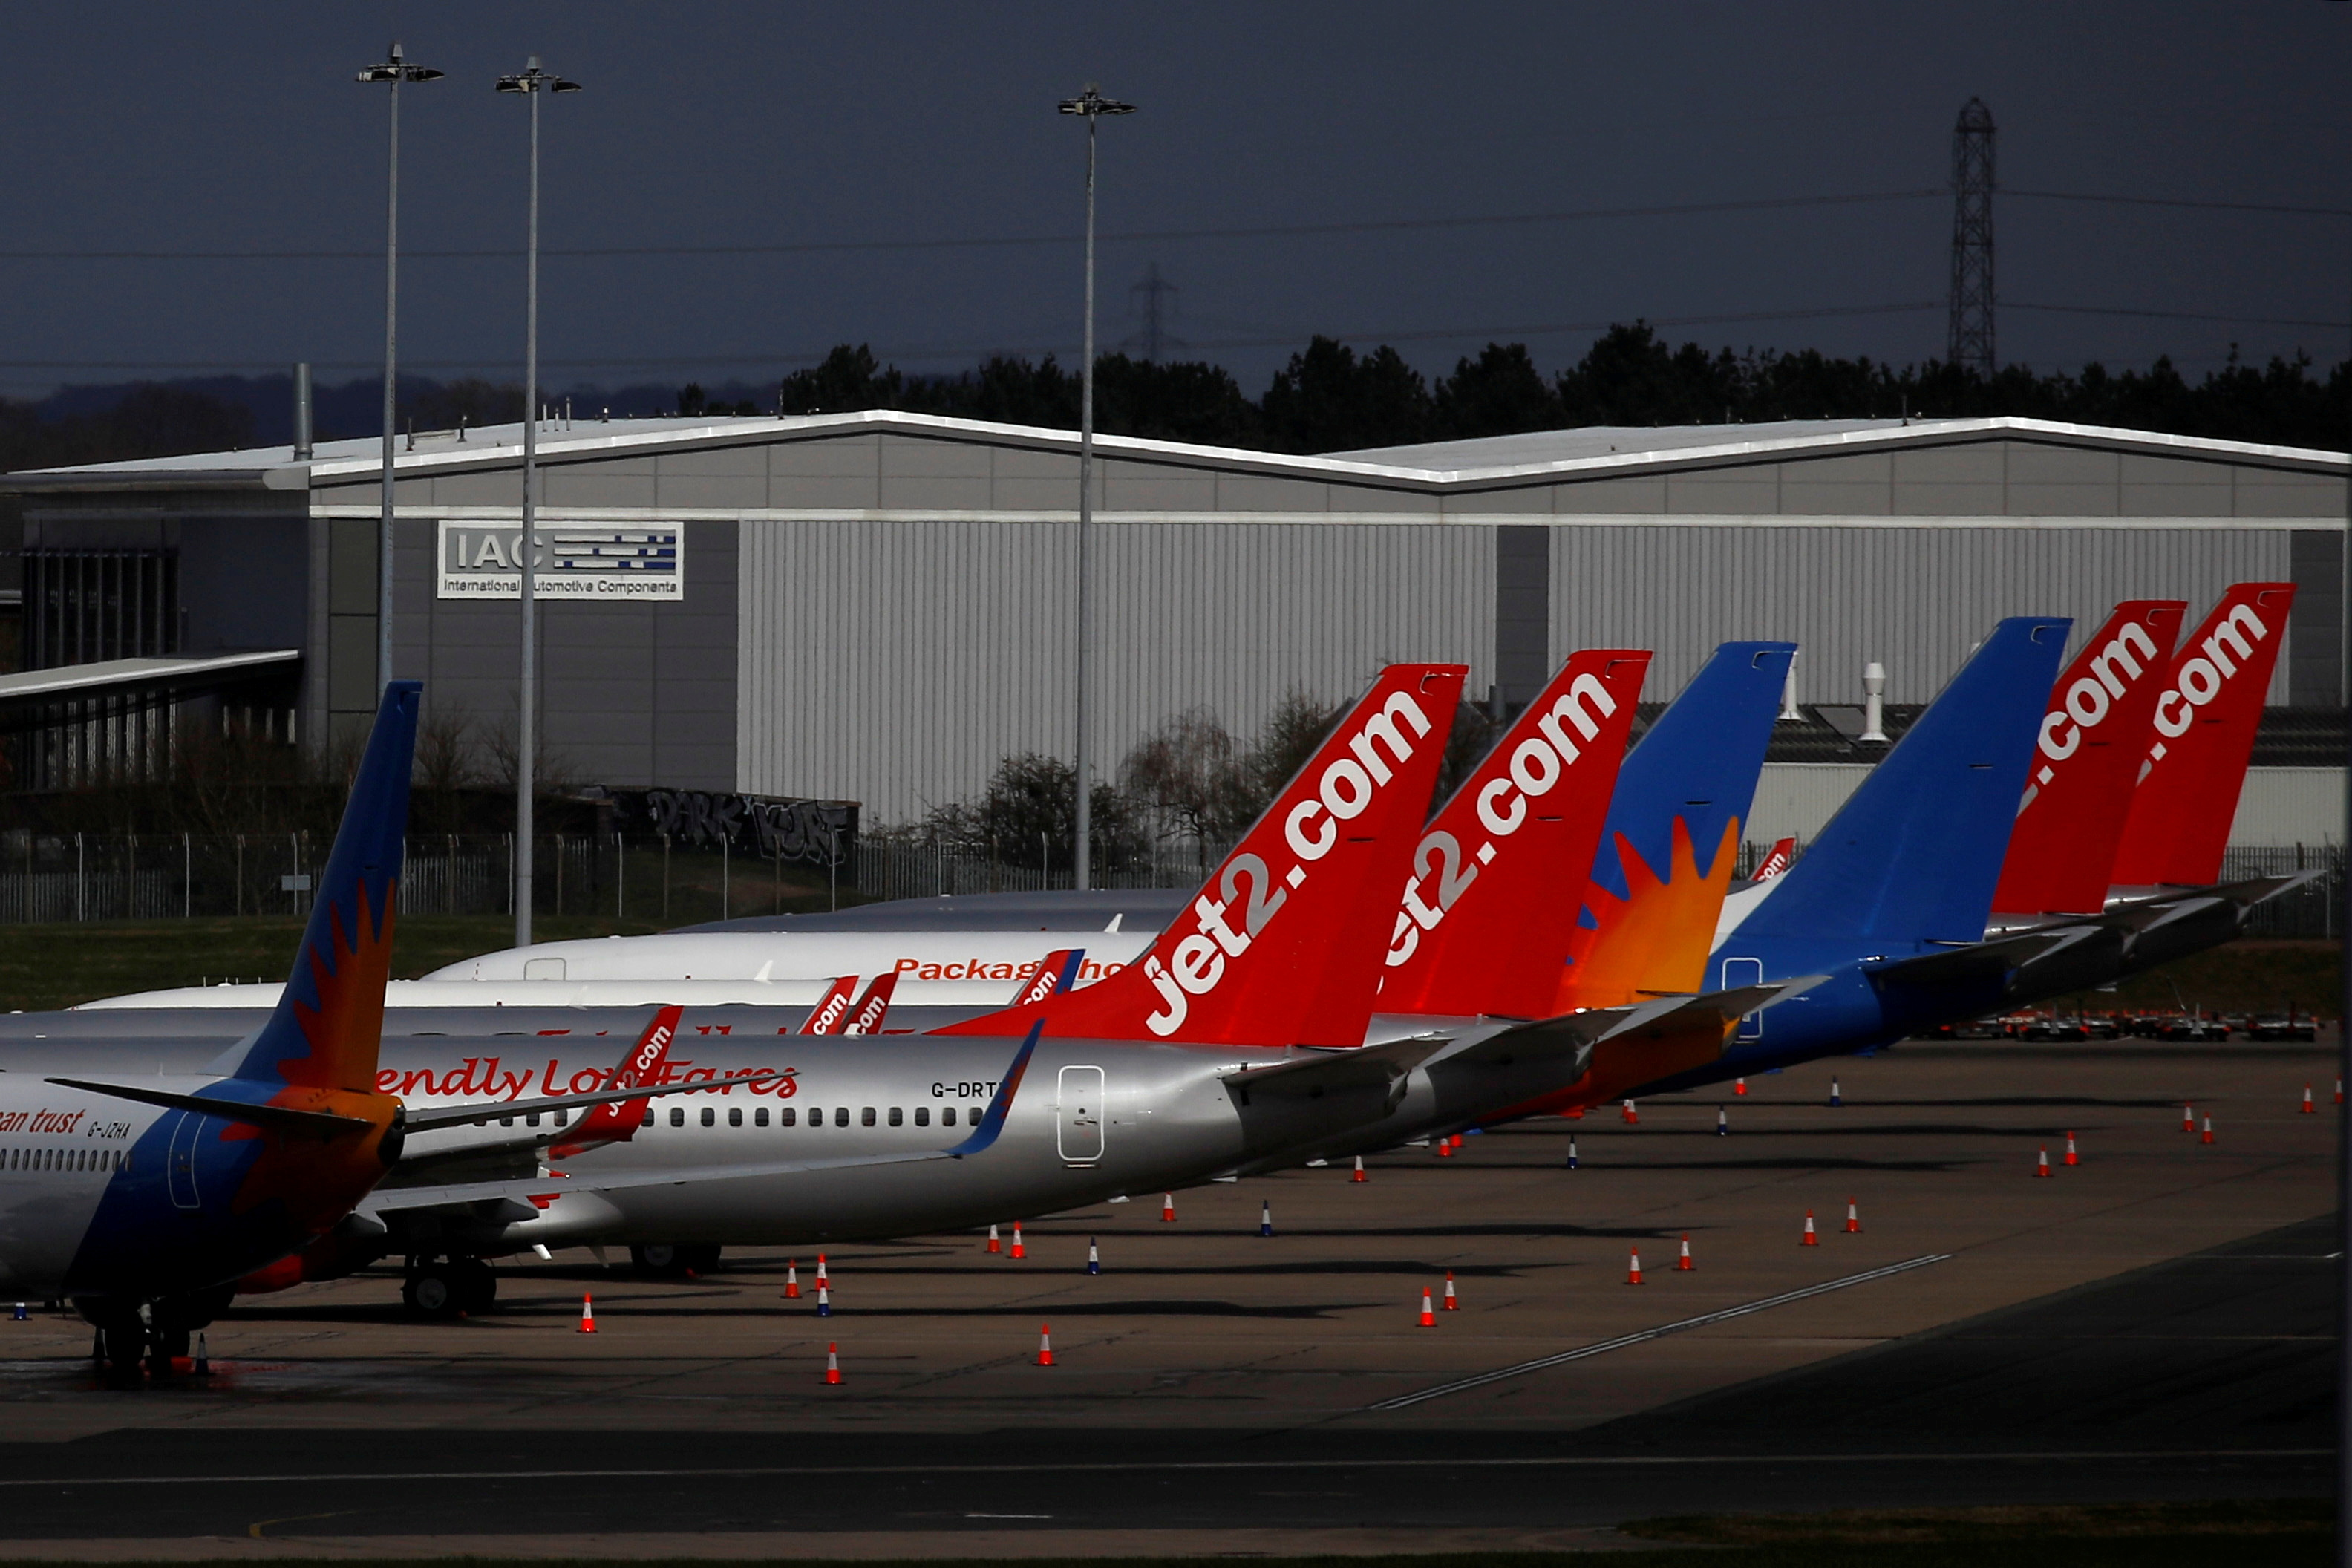 Jet2 planes are seen parked at Birmingham airport as the spread of the coronavirus disease (COVID-19) continues, Birmingham, Britain, March 28, 2020. REUTERS/Phil Noble